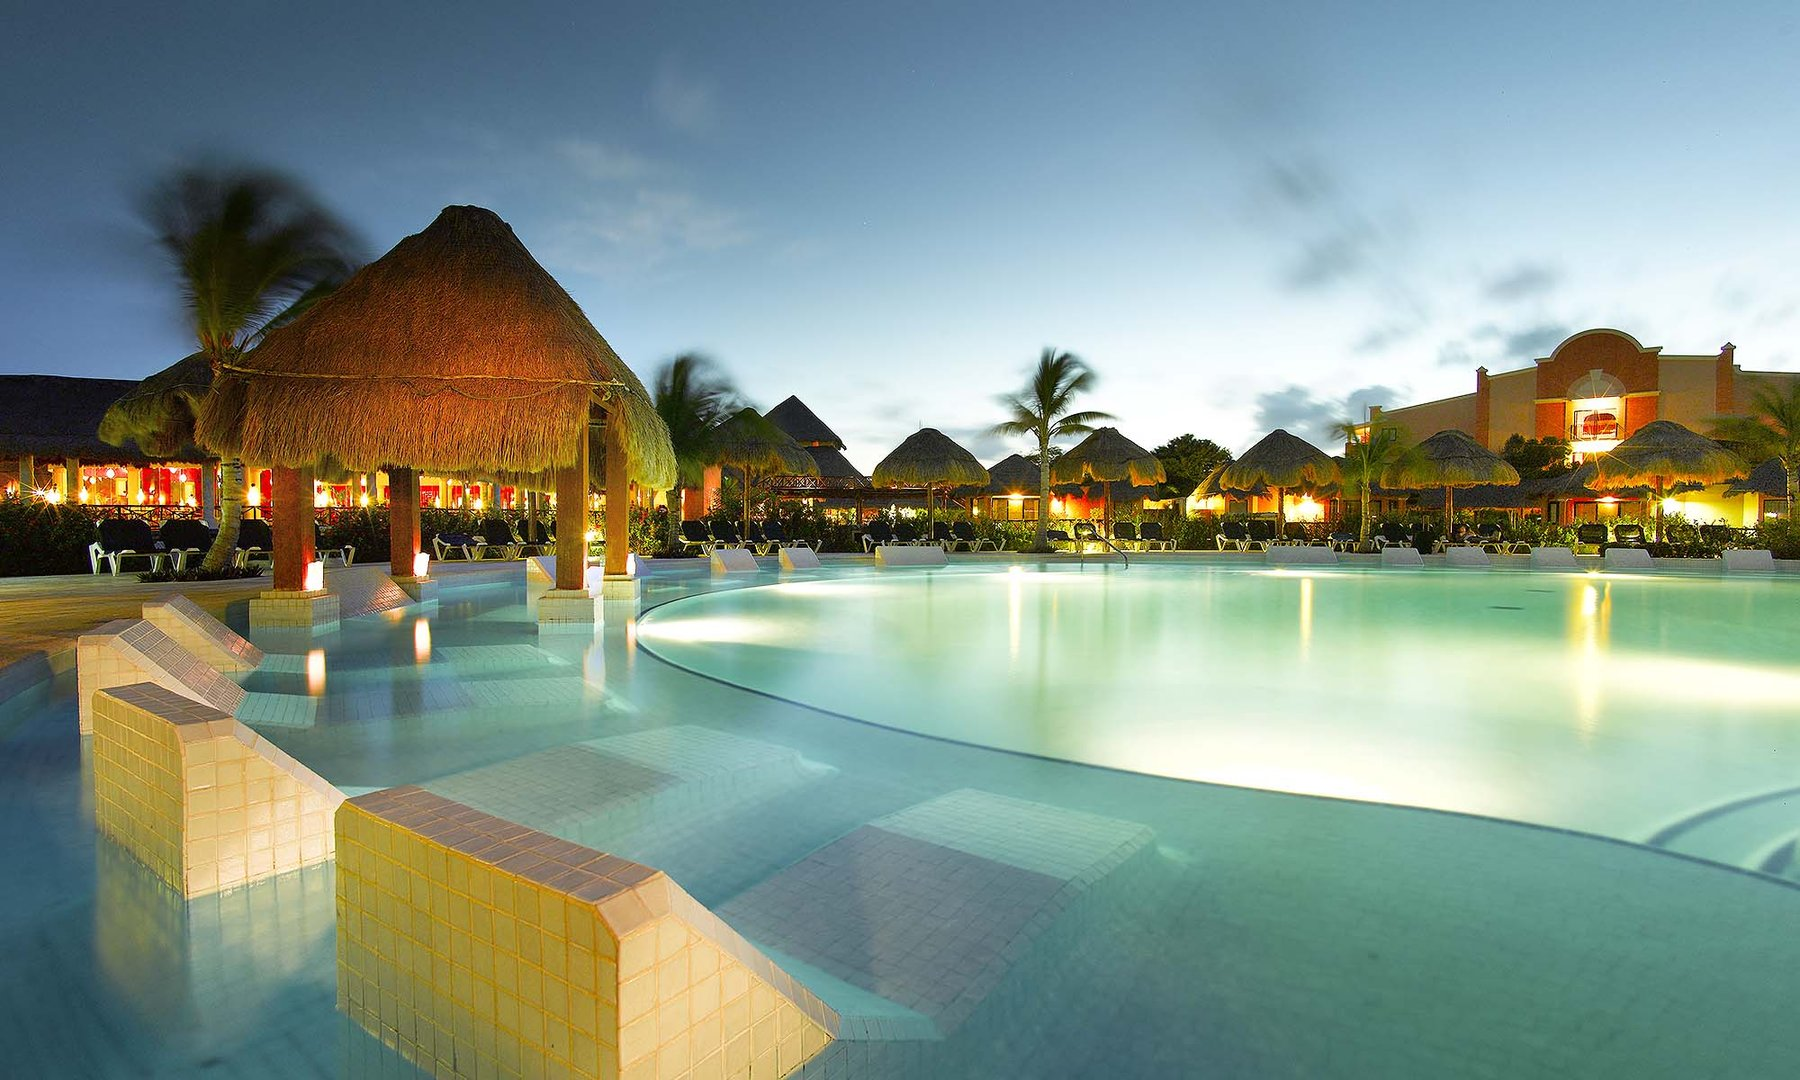 Hotel Grand Palladium Collonial Resort & Spa din Riviera Maya, Mexic